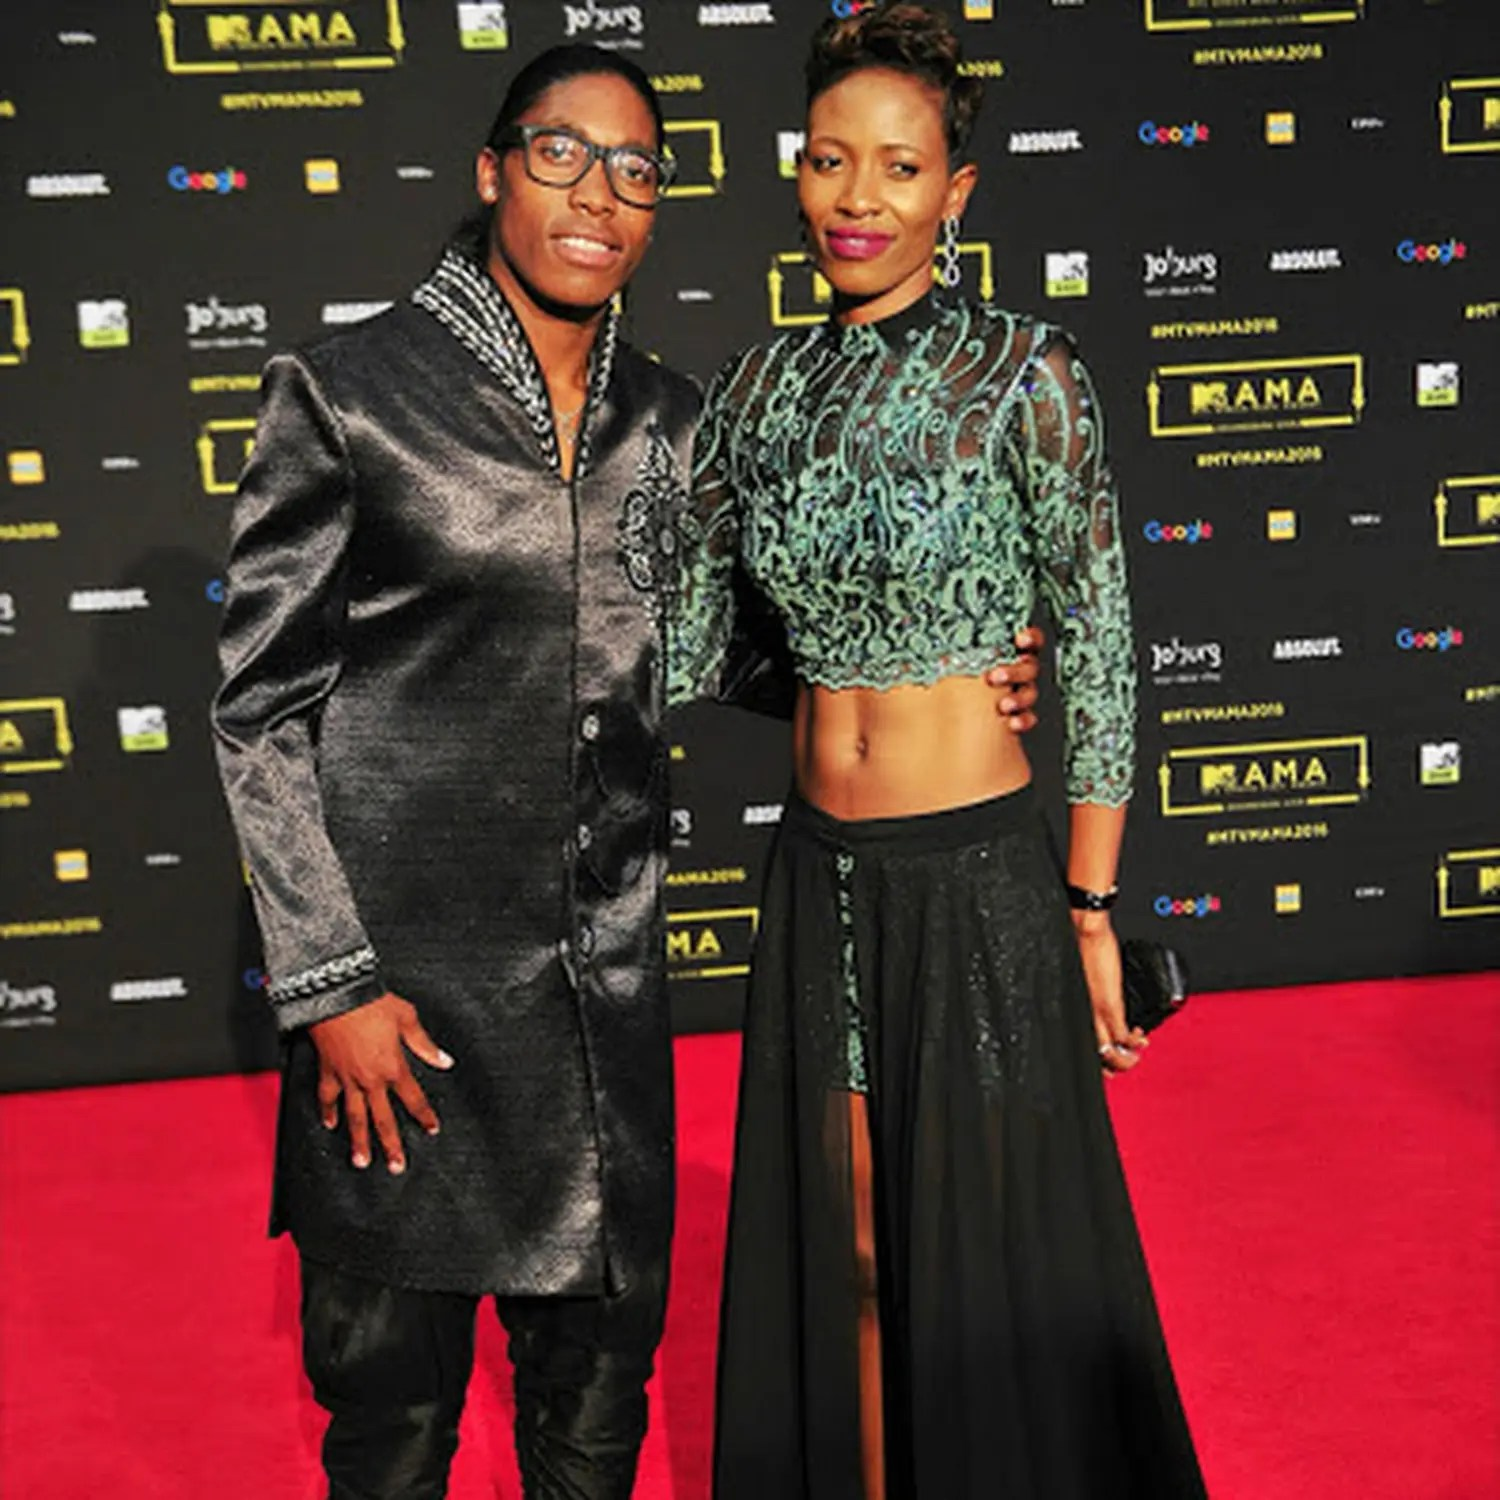 Prominet Athlete Caster Semenya and wife expecting 2nd baby